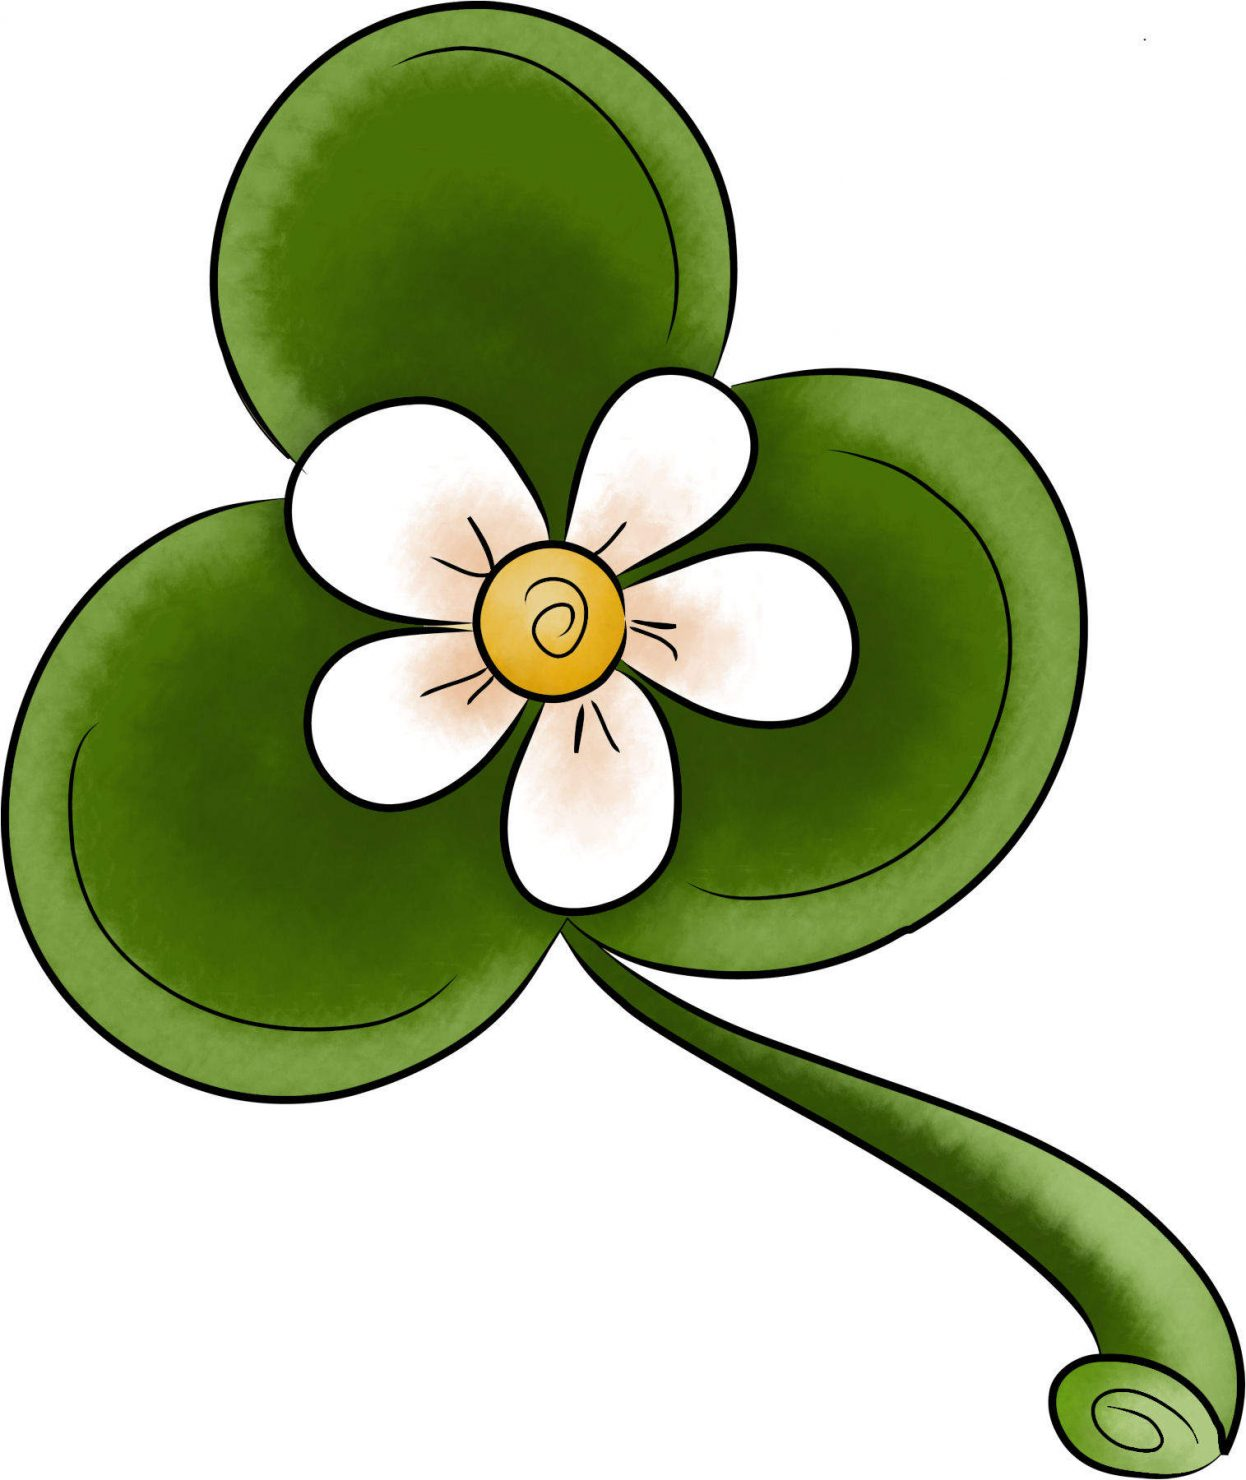 3 leaf clover to remind the Sandwich Generation of the Trinity - Father Son Holy Spirit - during this season of Lent 2012